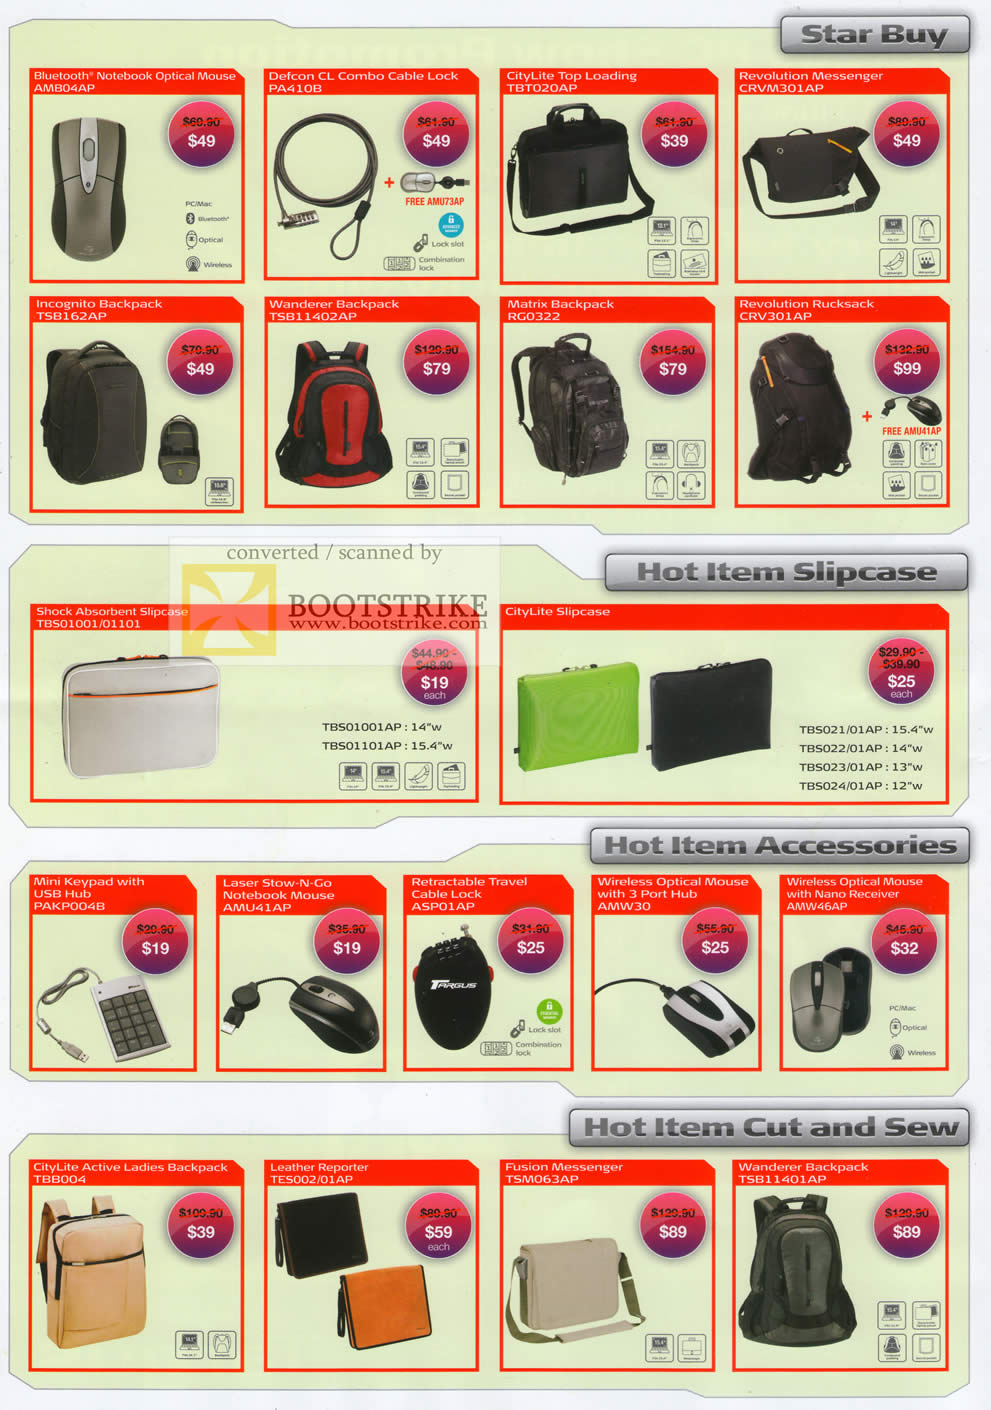 PC Show 2010 price list image brochure of Targus Bluetooth Notebook Mouse Cable Lock Casing Bag Backpack Citylite Mini Keypad